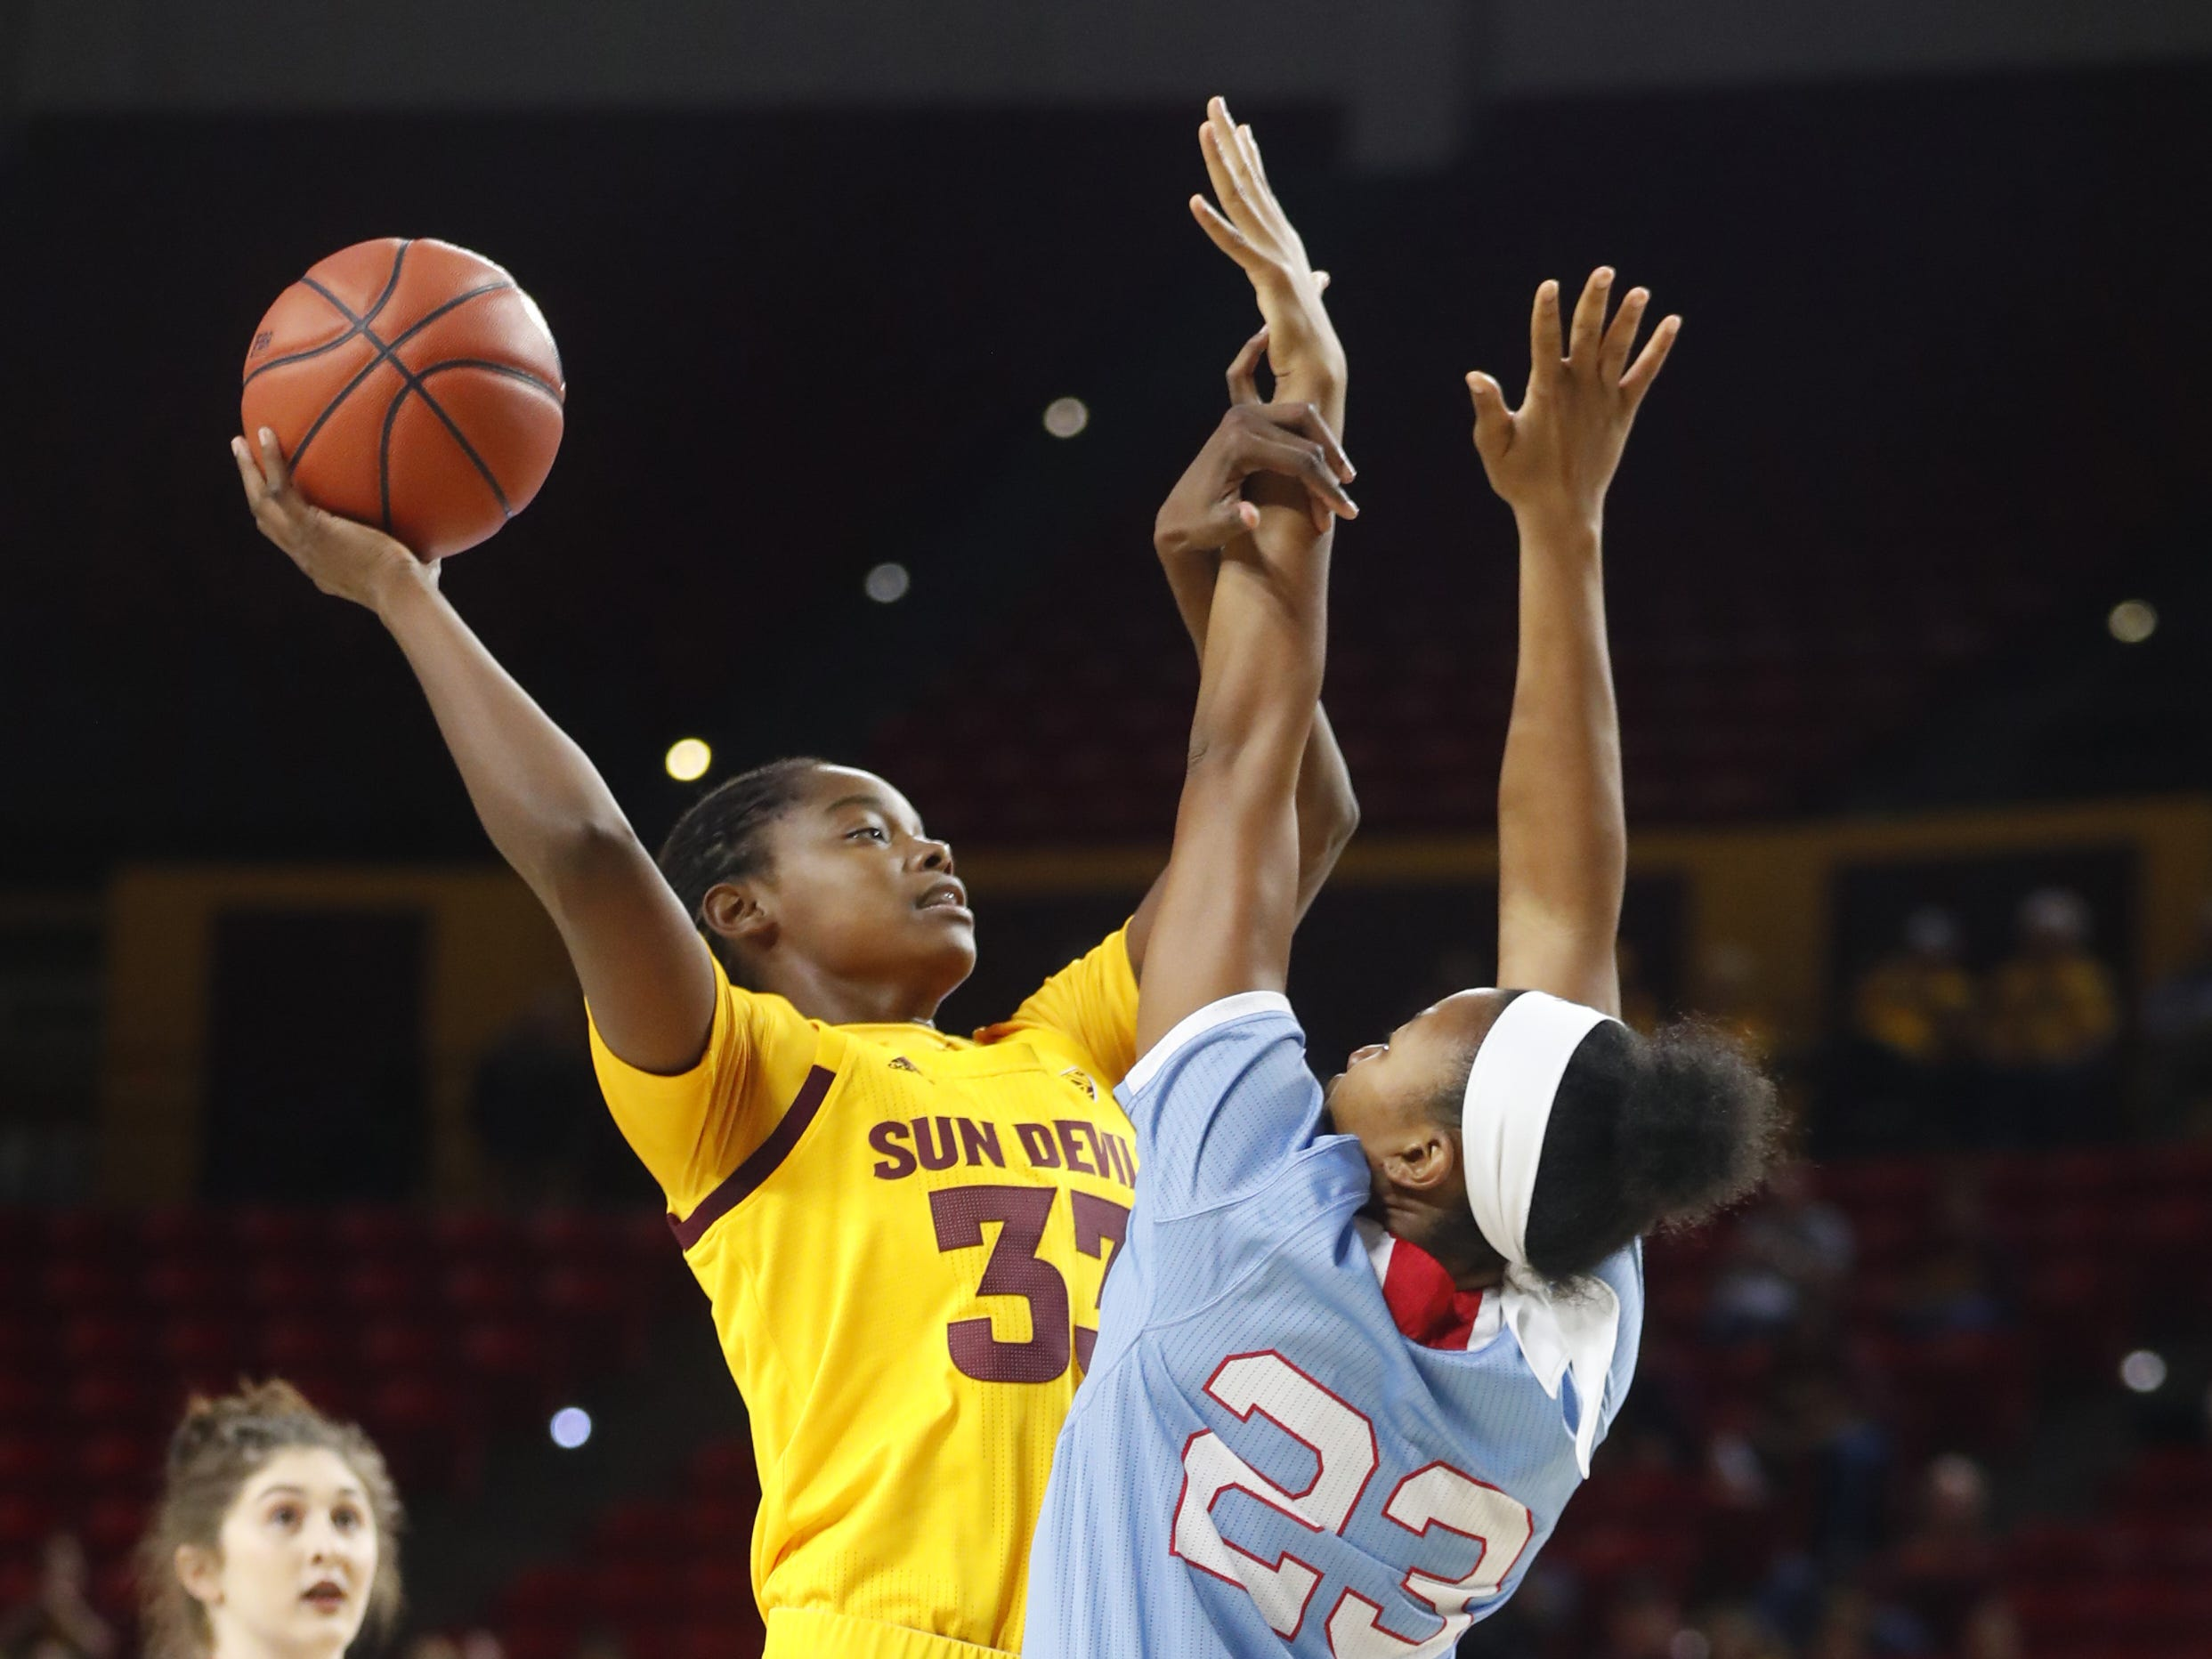 ASU's Charnea Johnson-Chapman (33) shoots against Louisiana Tech's Reauna Cleaver (23) during the first half at Wells Fargo Arena in Tempe, Ariz. on November 30, 2018.